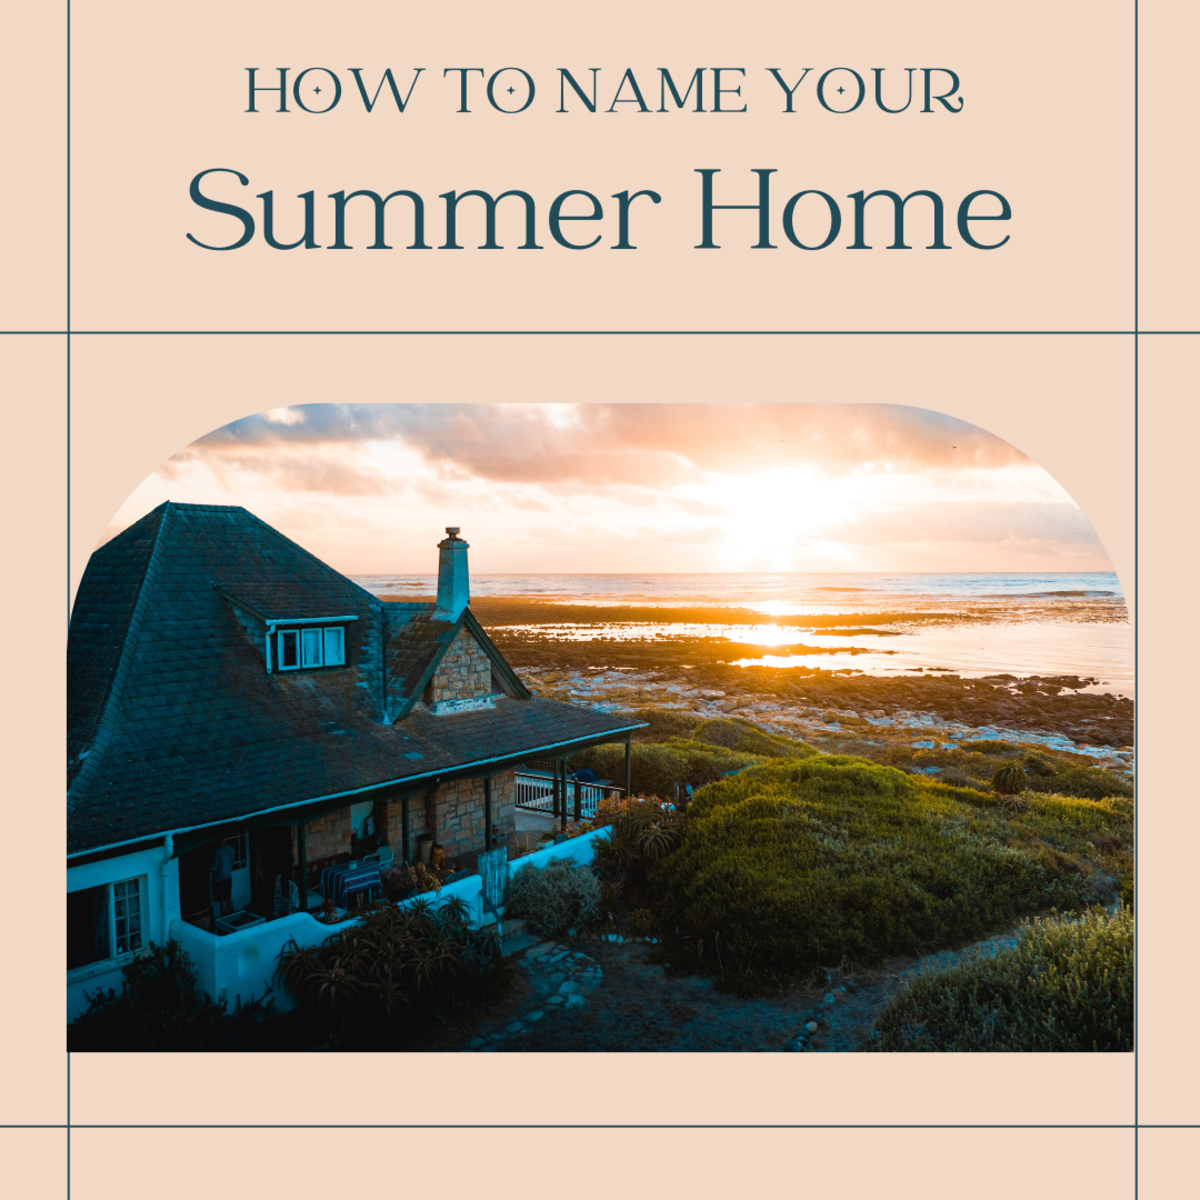 What should you name your summer home? Here are some tips, plus 40 ideas to inspire you.